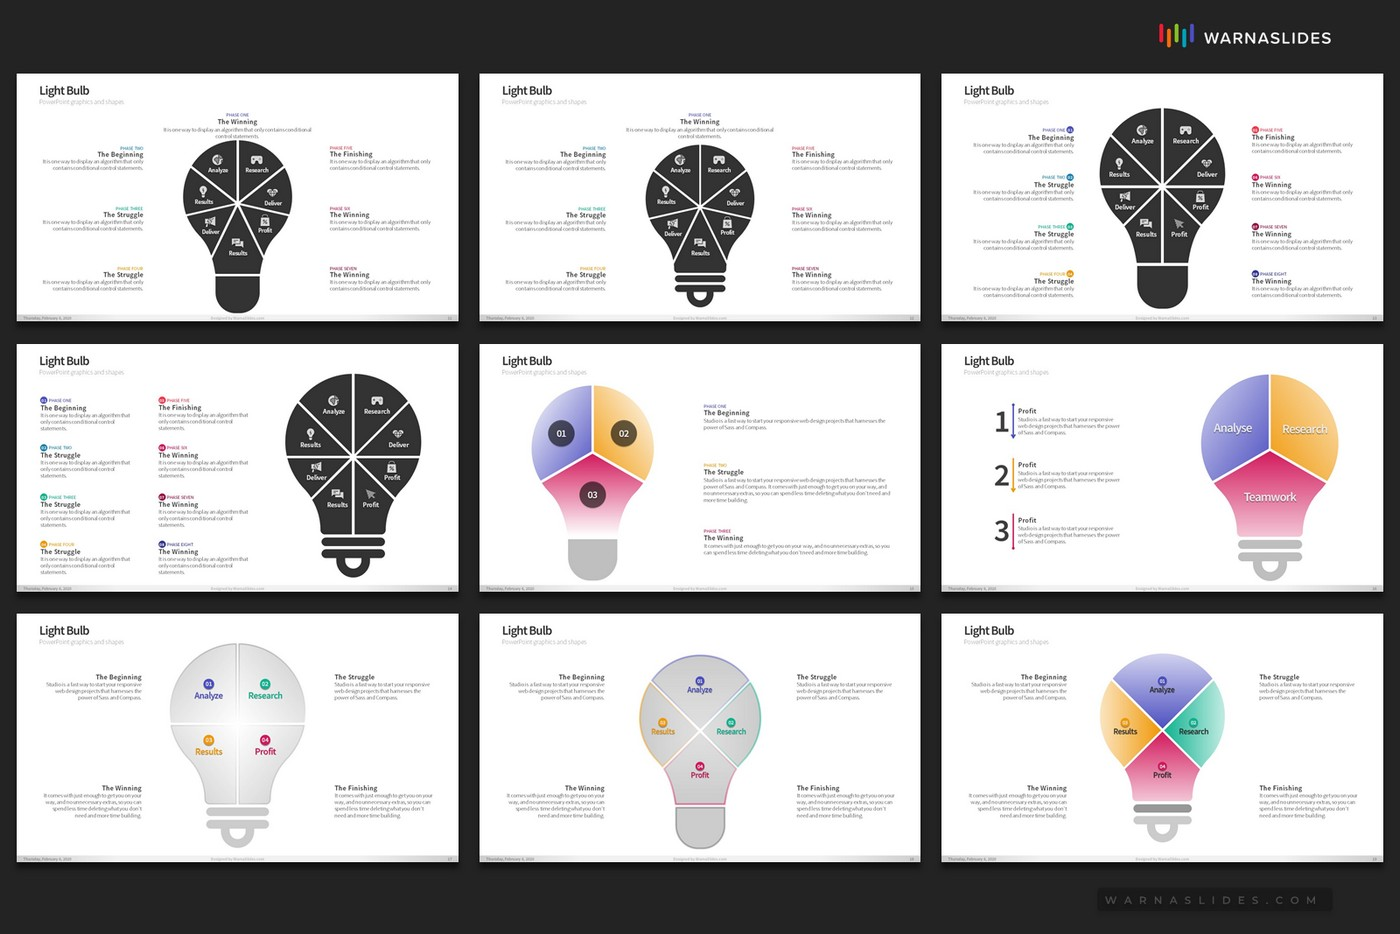 Light-Bulb-Ideas-PowerPoint-Template-for-Business-Pitch-Deck-Professional-Creative-PowerPoint-Icons-007